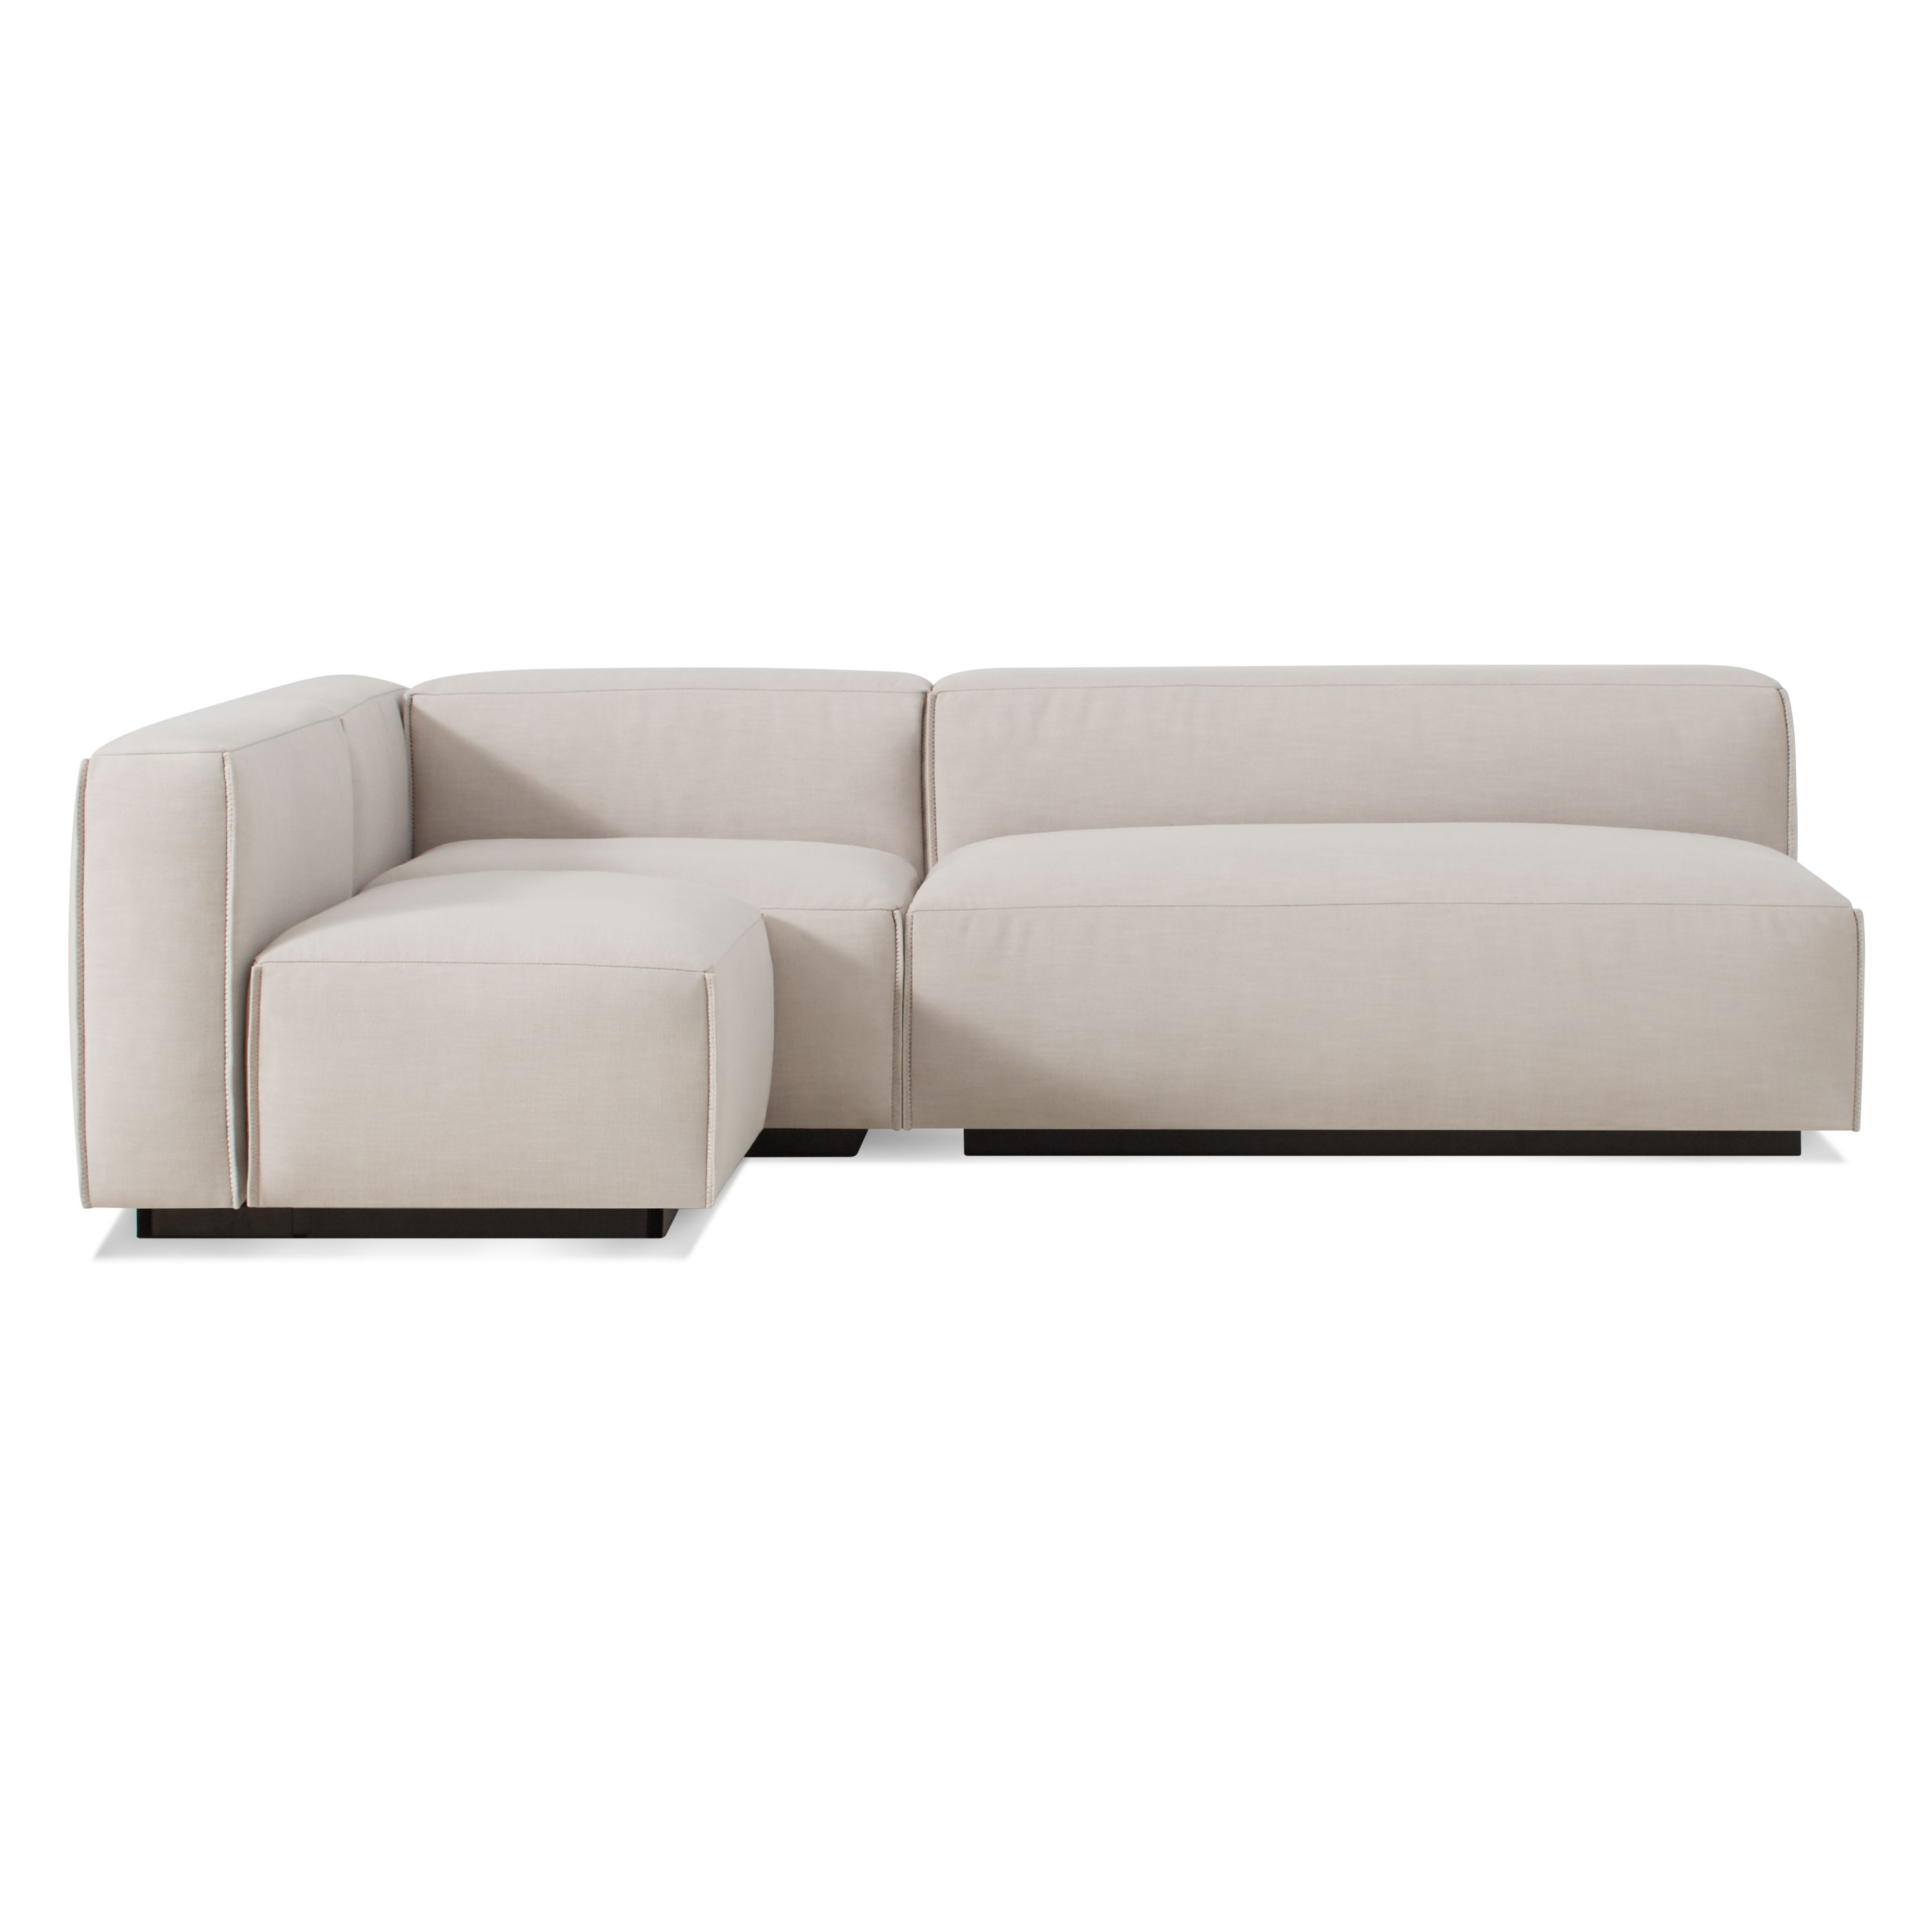 Blu Dot Pertaining To Armless Sectional Sofas (View 3 of 20)